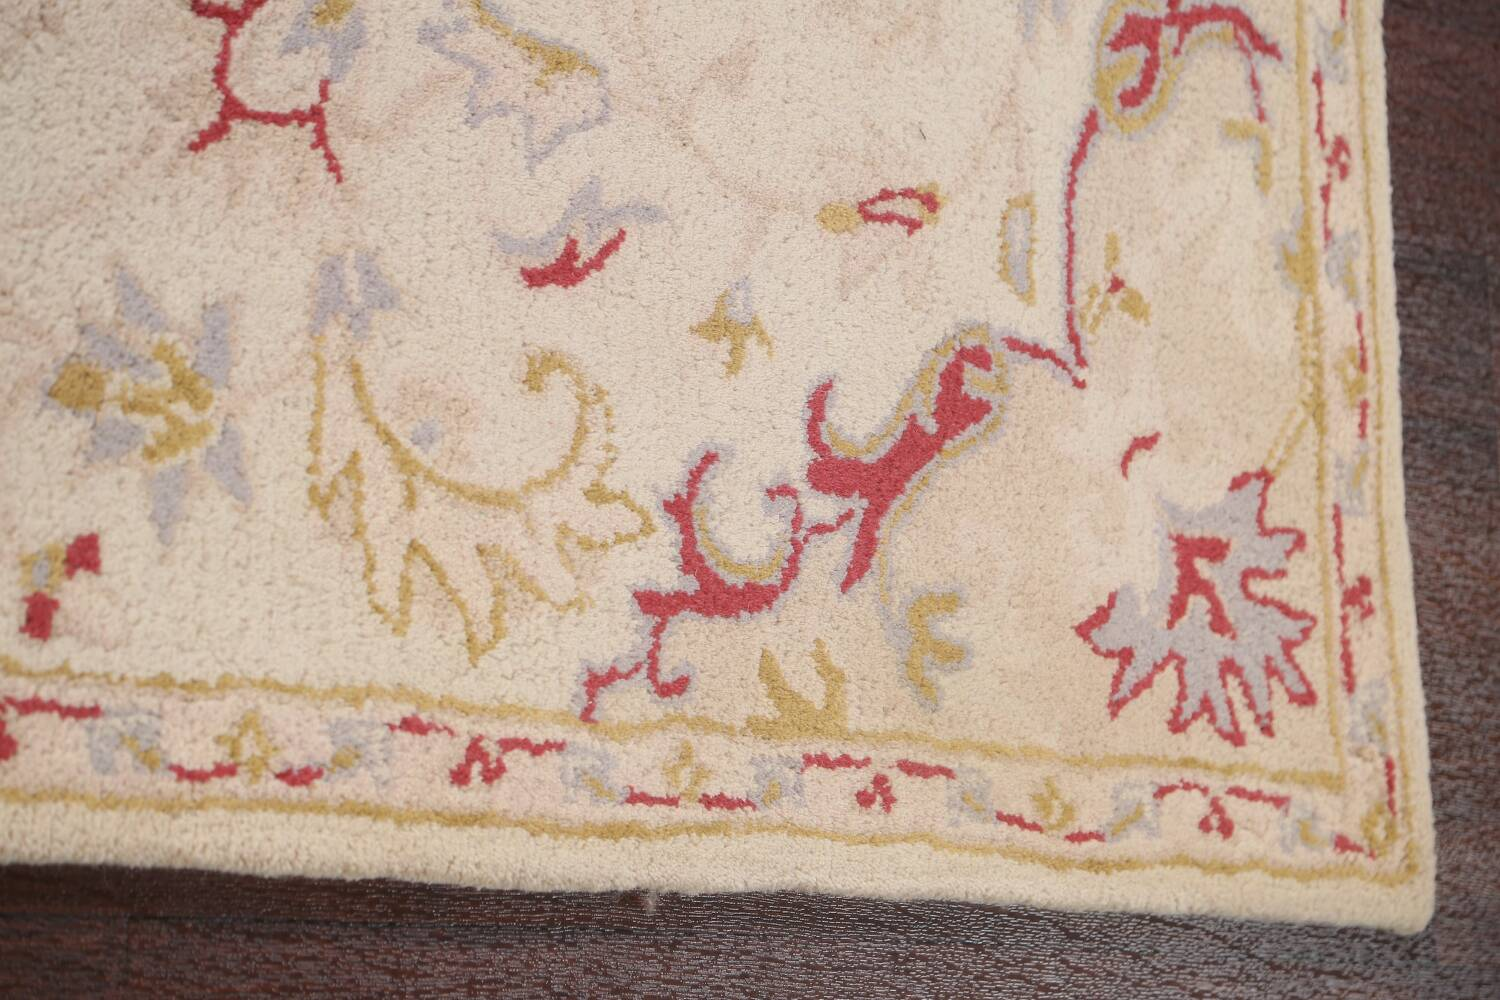 Hand-Tufted Floral Area Rug 5x8 image 10